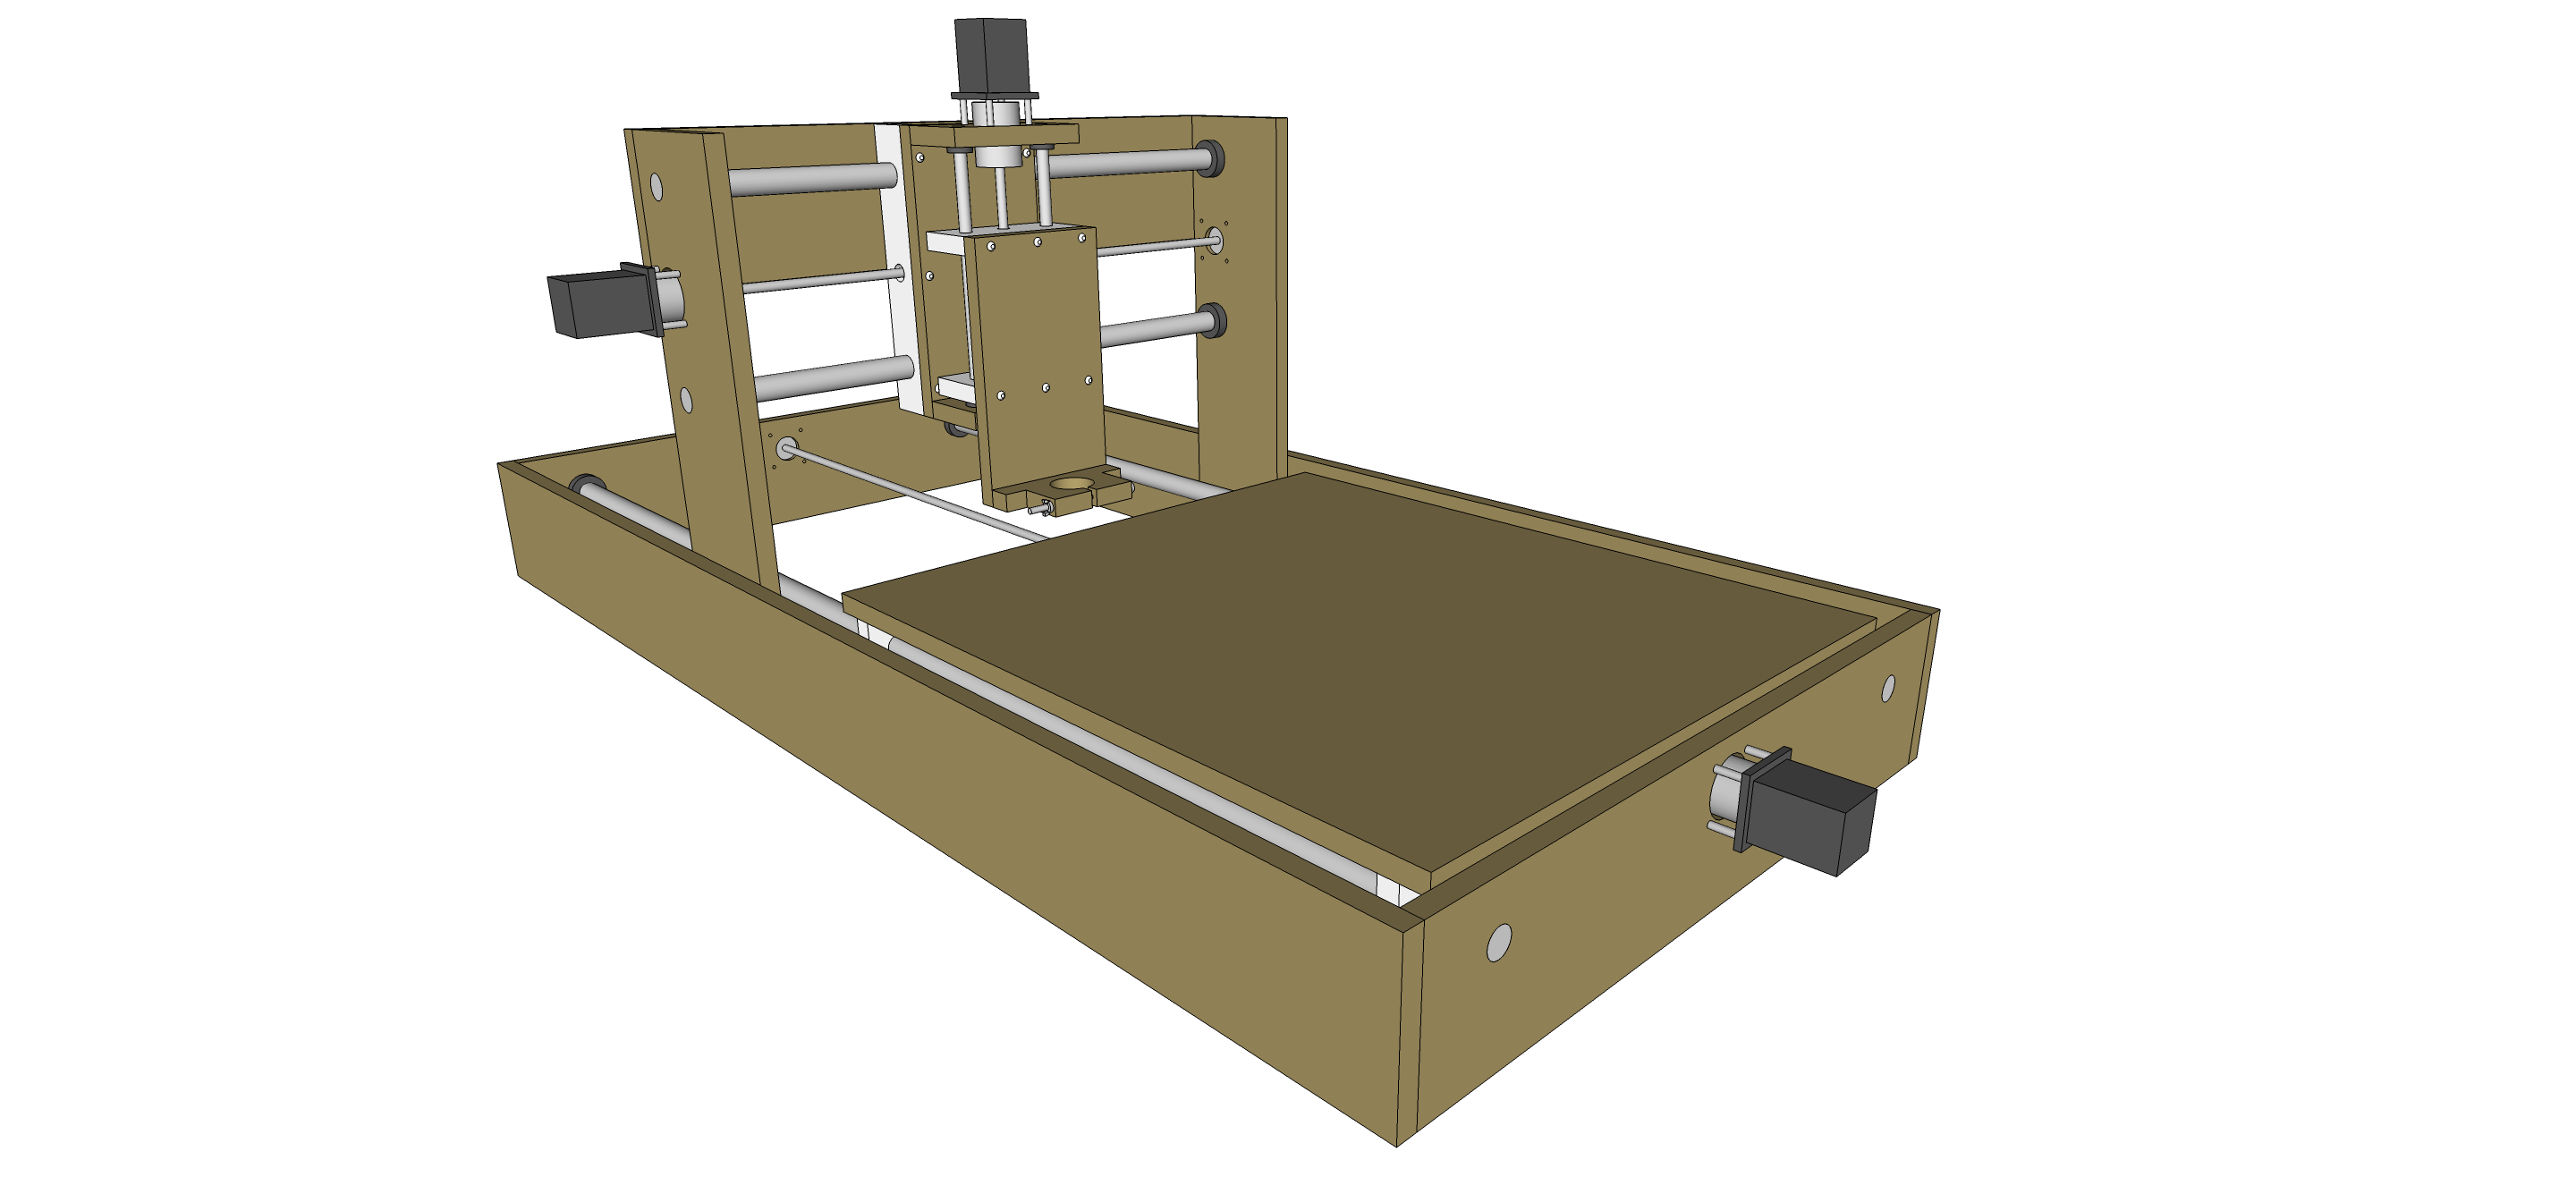 how to build a model cnc